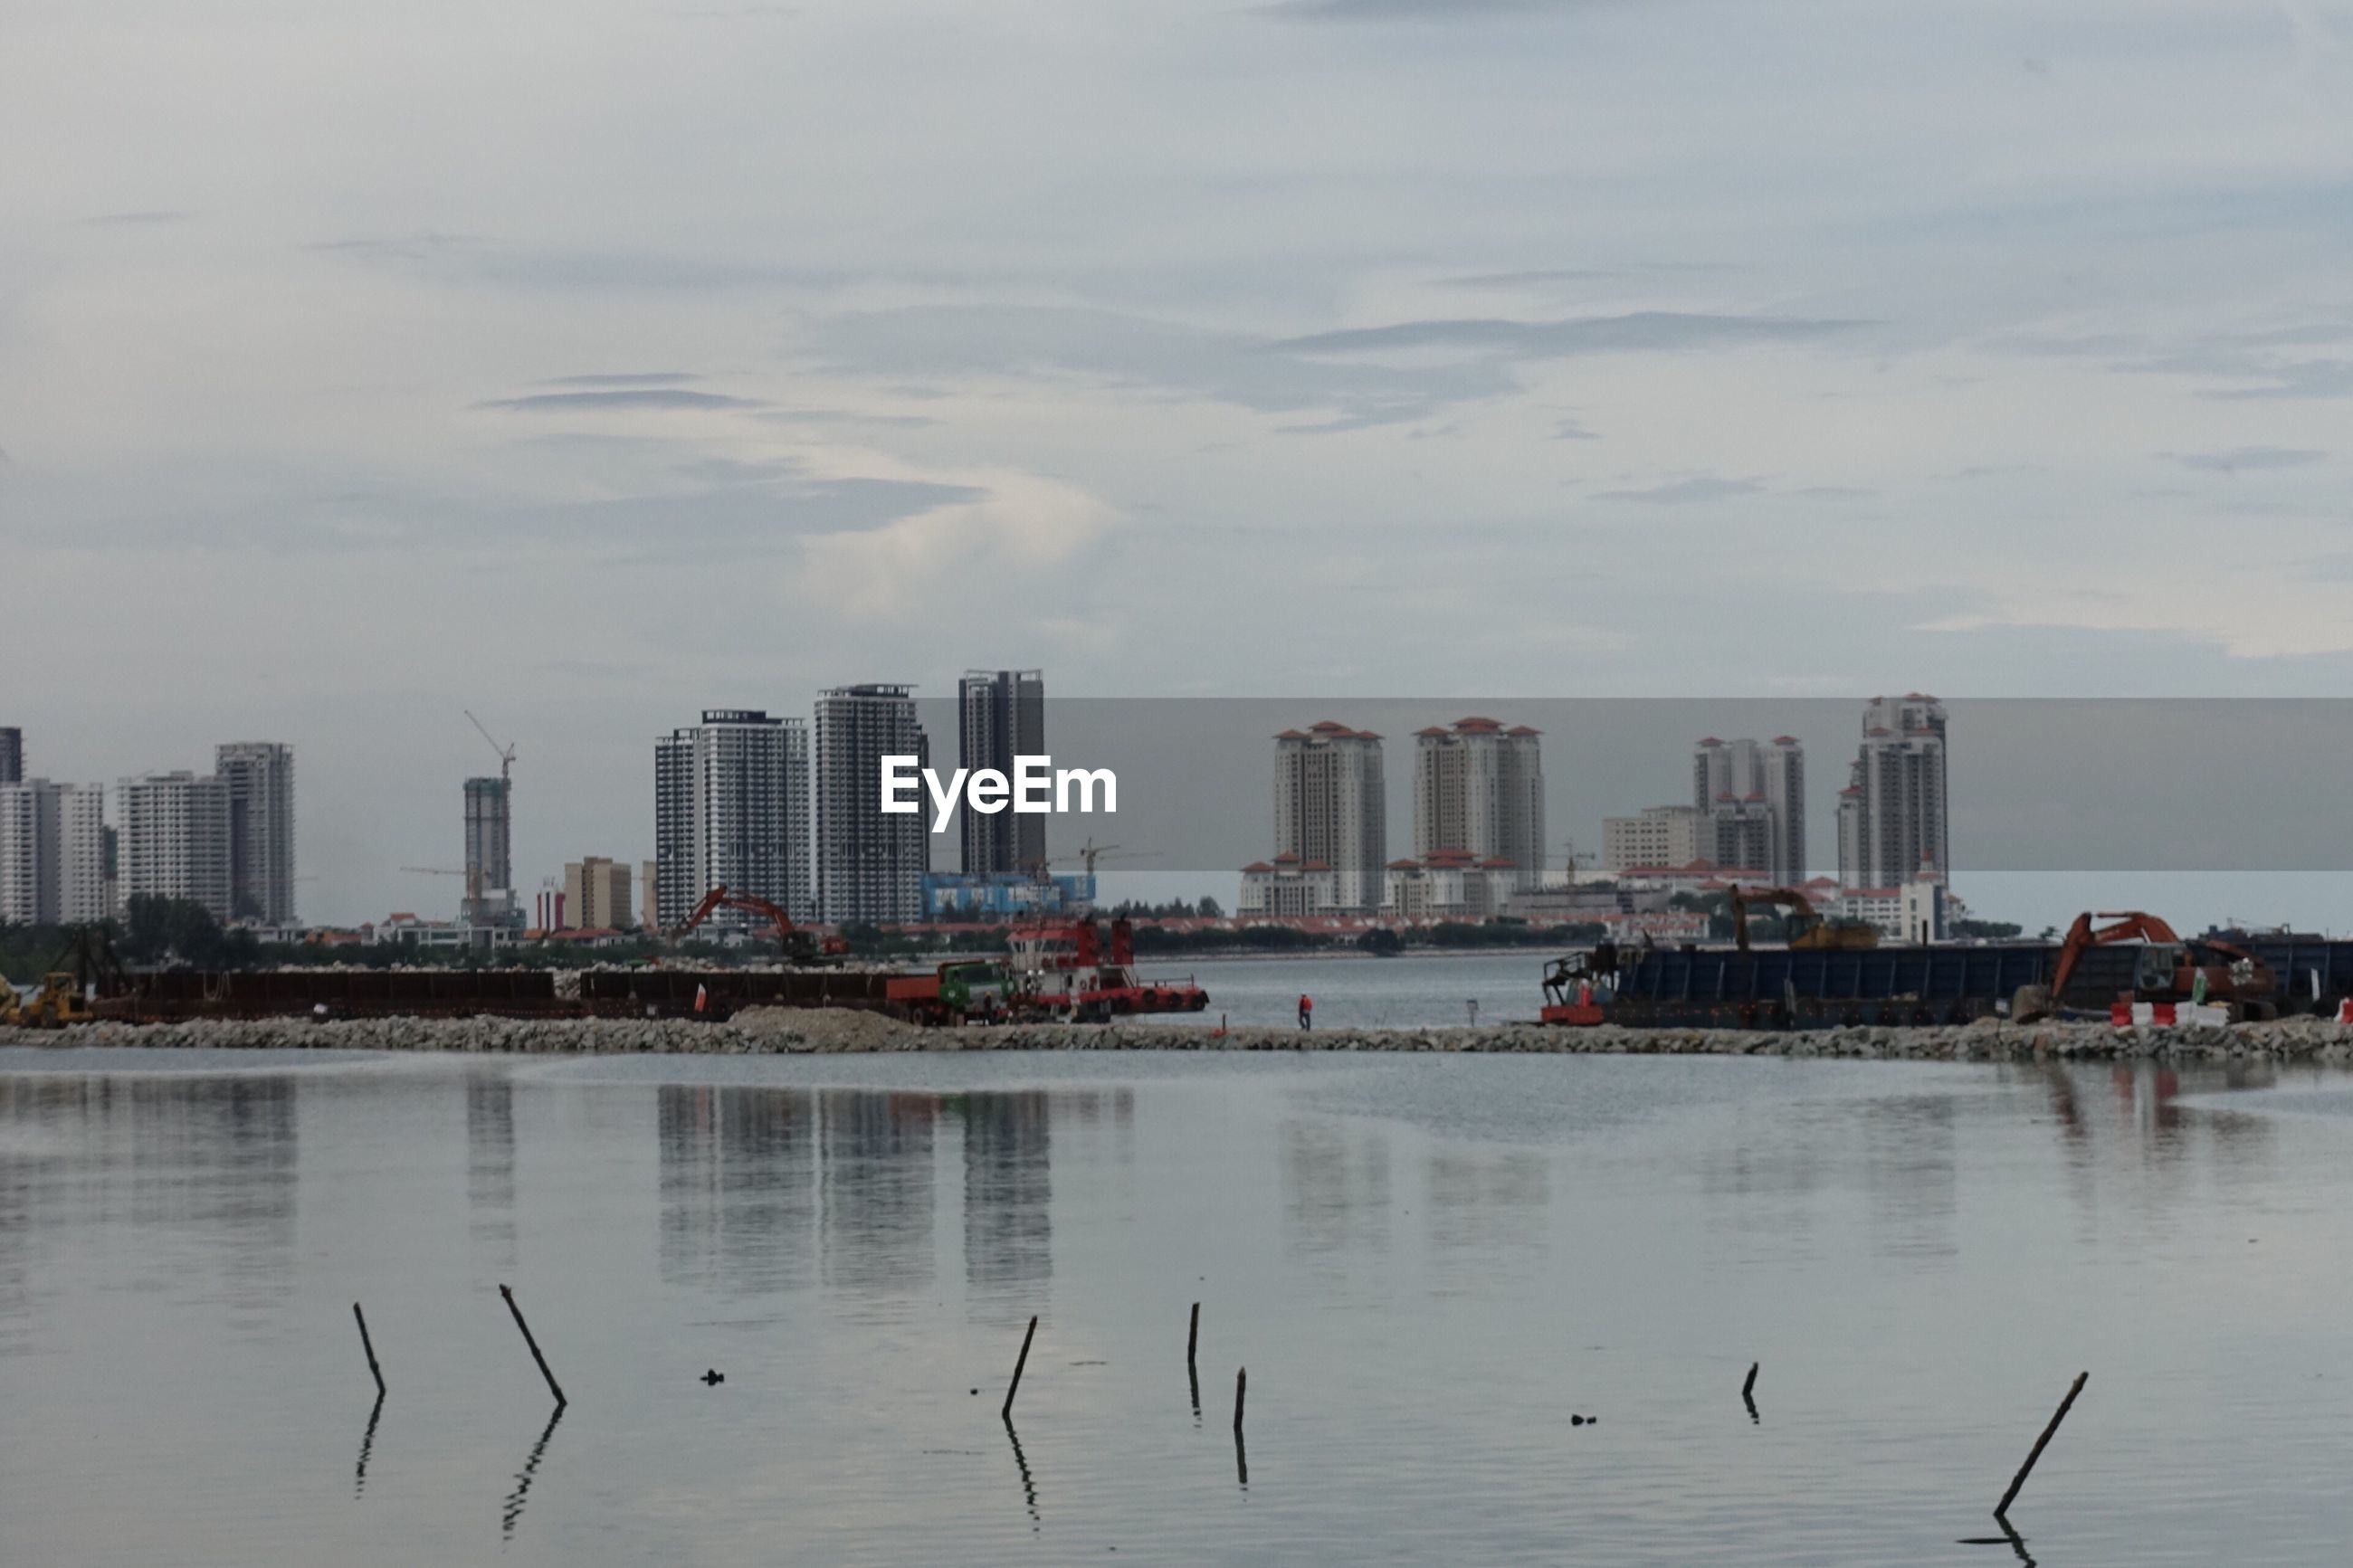 VIEW OF CITY WITH WATERFRONT